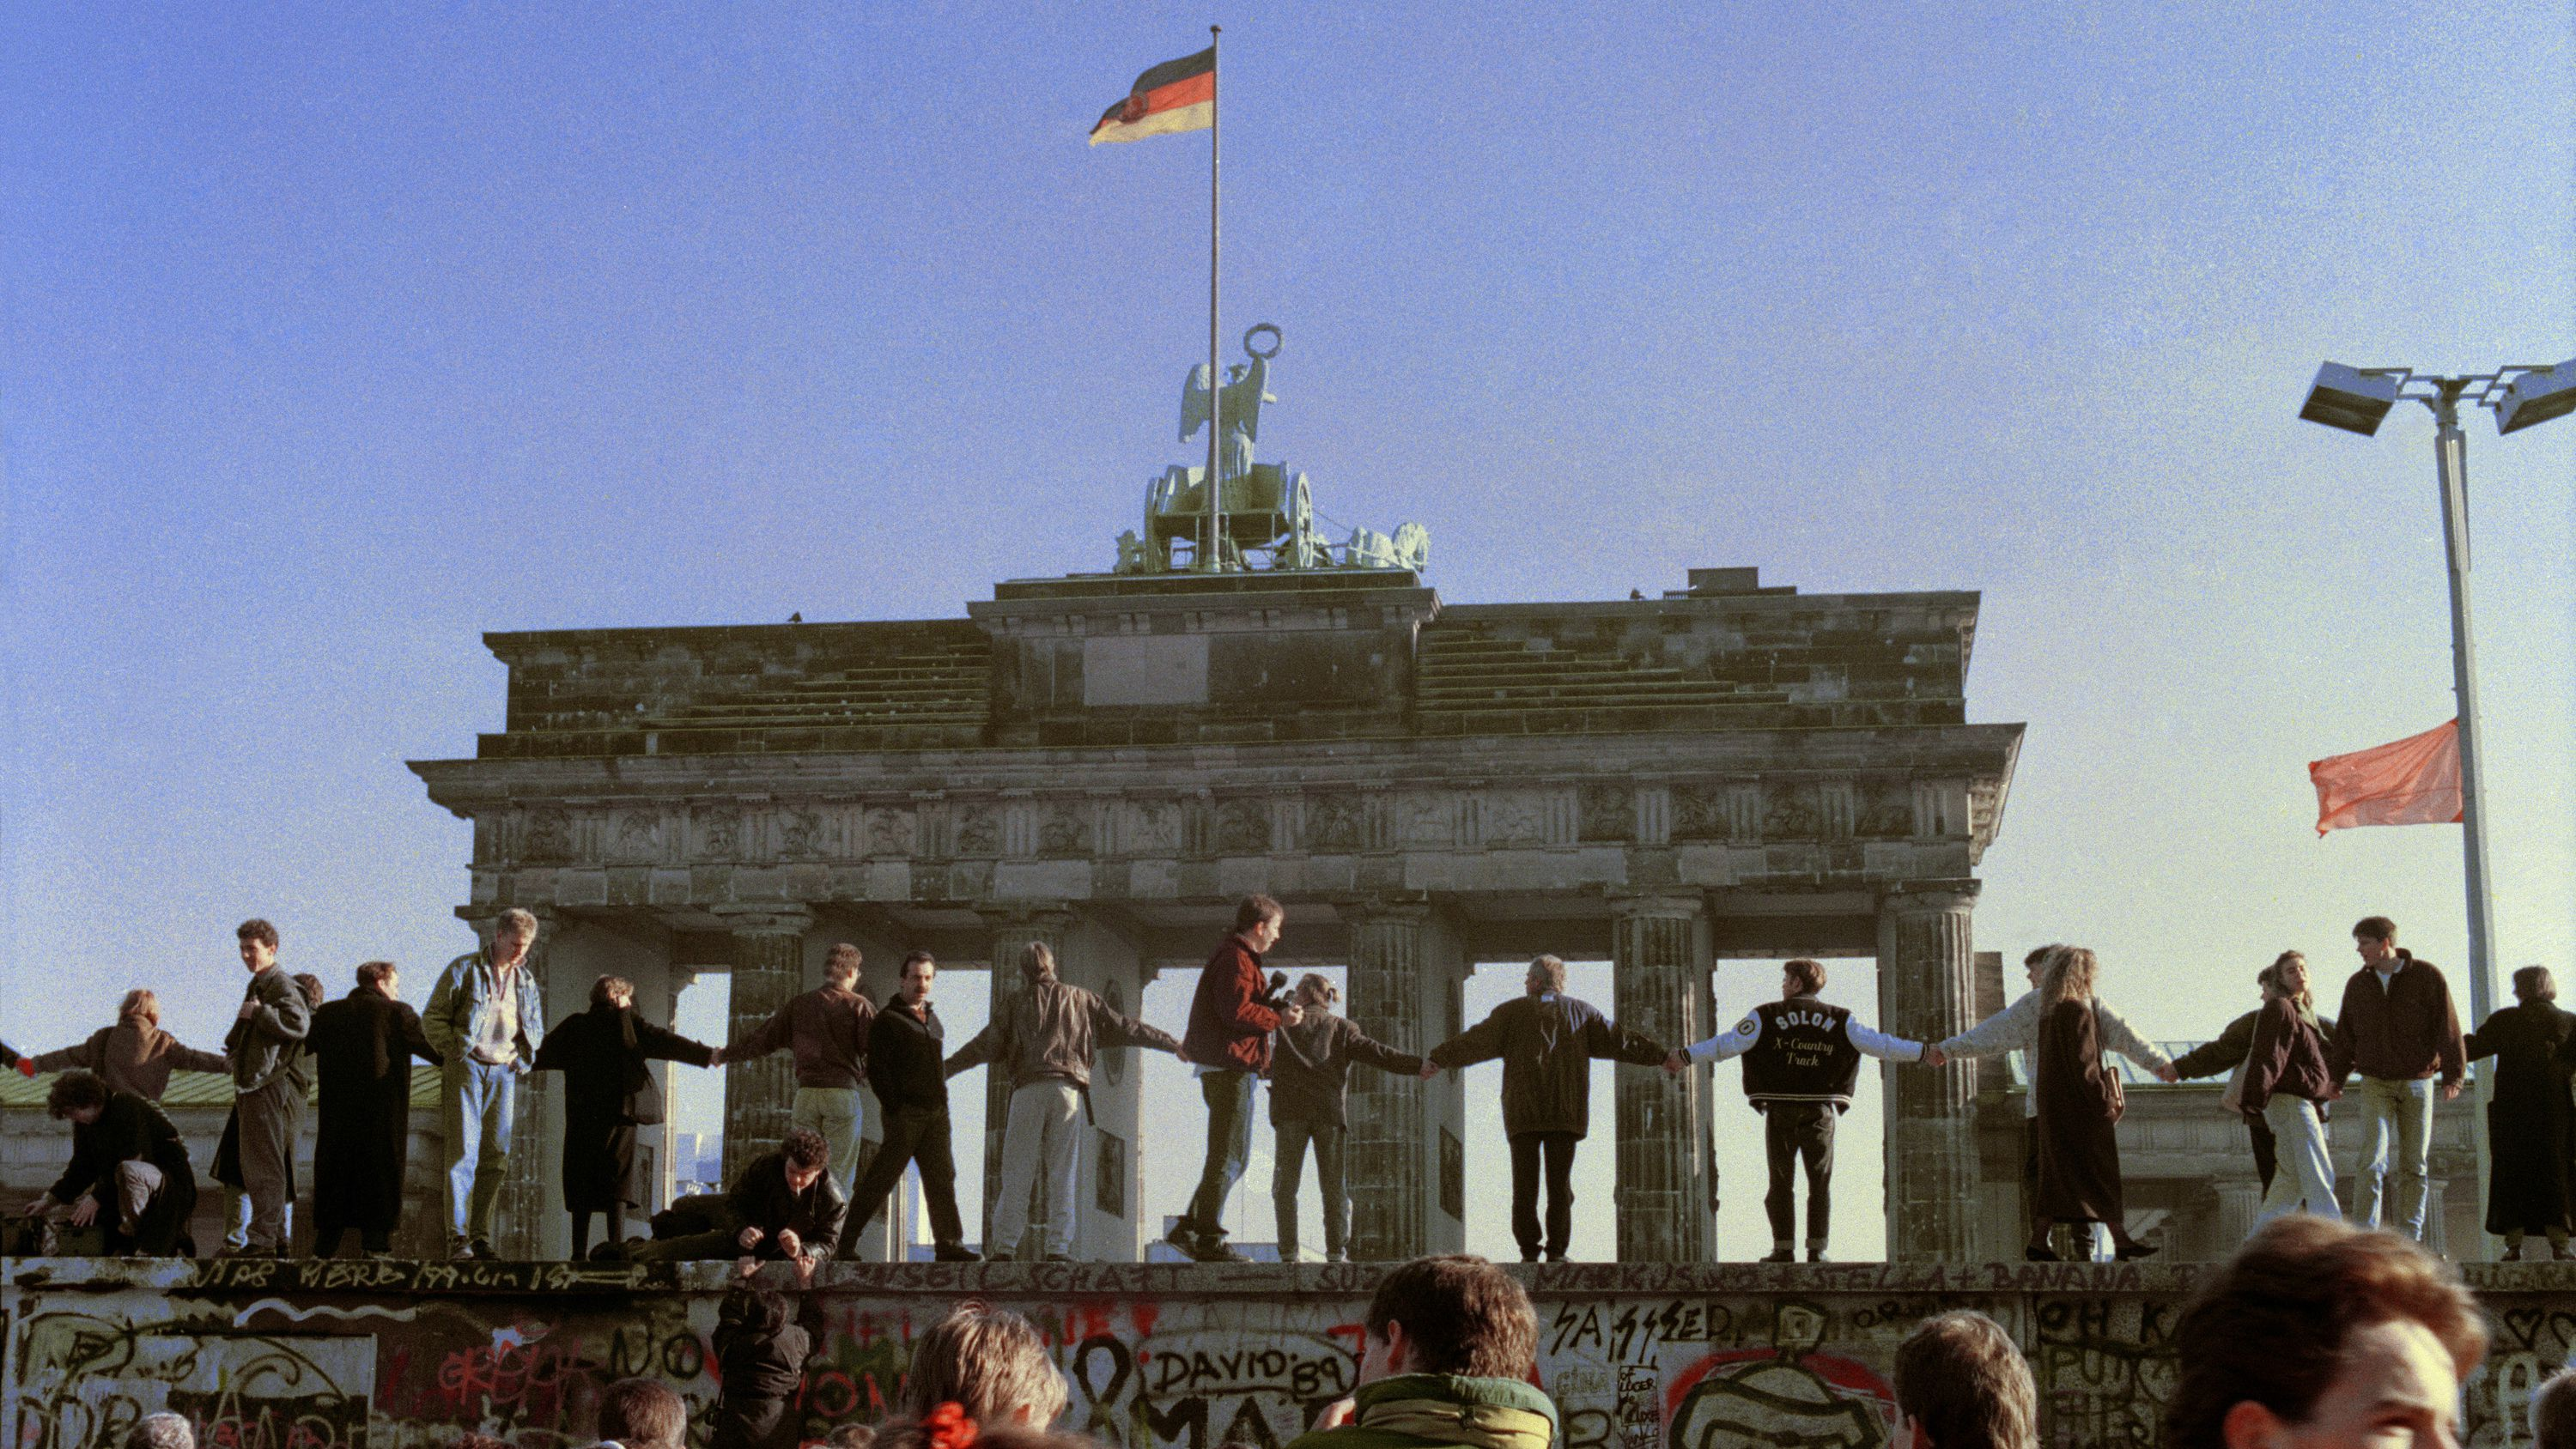 Berliners sing and dance on top of The Berlin Wall to celebrate the opening of East-West German borders in this Nov. 10, 1989 file picture. Thousands of East German citizens moved into the West after East German authorities opened all border crossing points to the West. In the background is the Brandenburg Gate. Built in 1961 of barbed wire and concrete, the wall divided Berlin, becoming the most powerful symbol of The Cold War. Thursday, Nov. 9, 2006 marks the 17th anniversary of the fall of the Berlin Wall. (AP Photo/Thomas Kienzle, File)